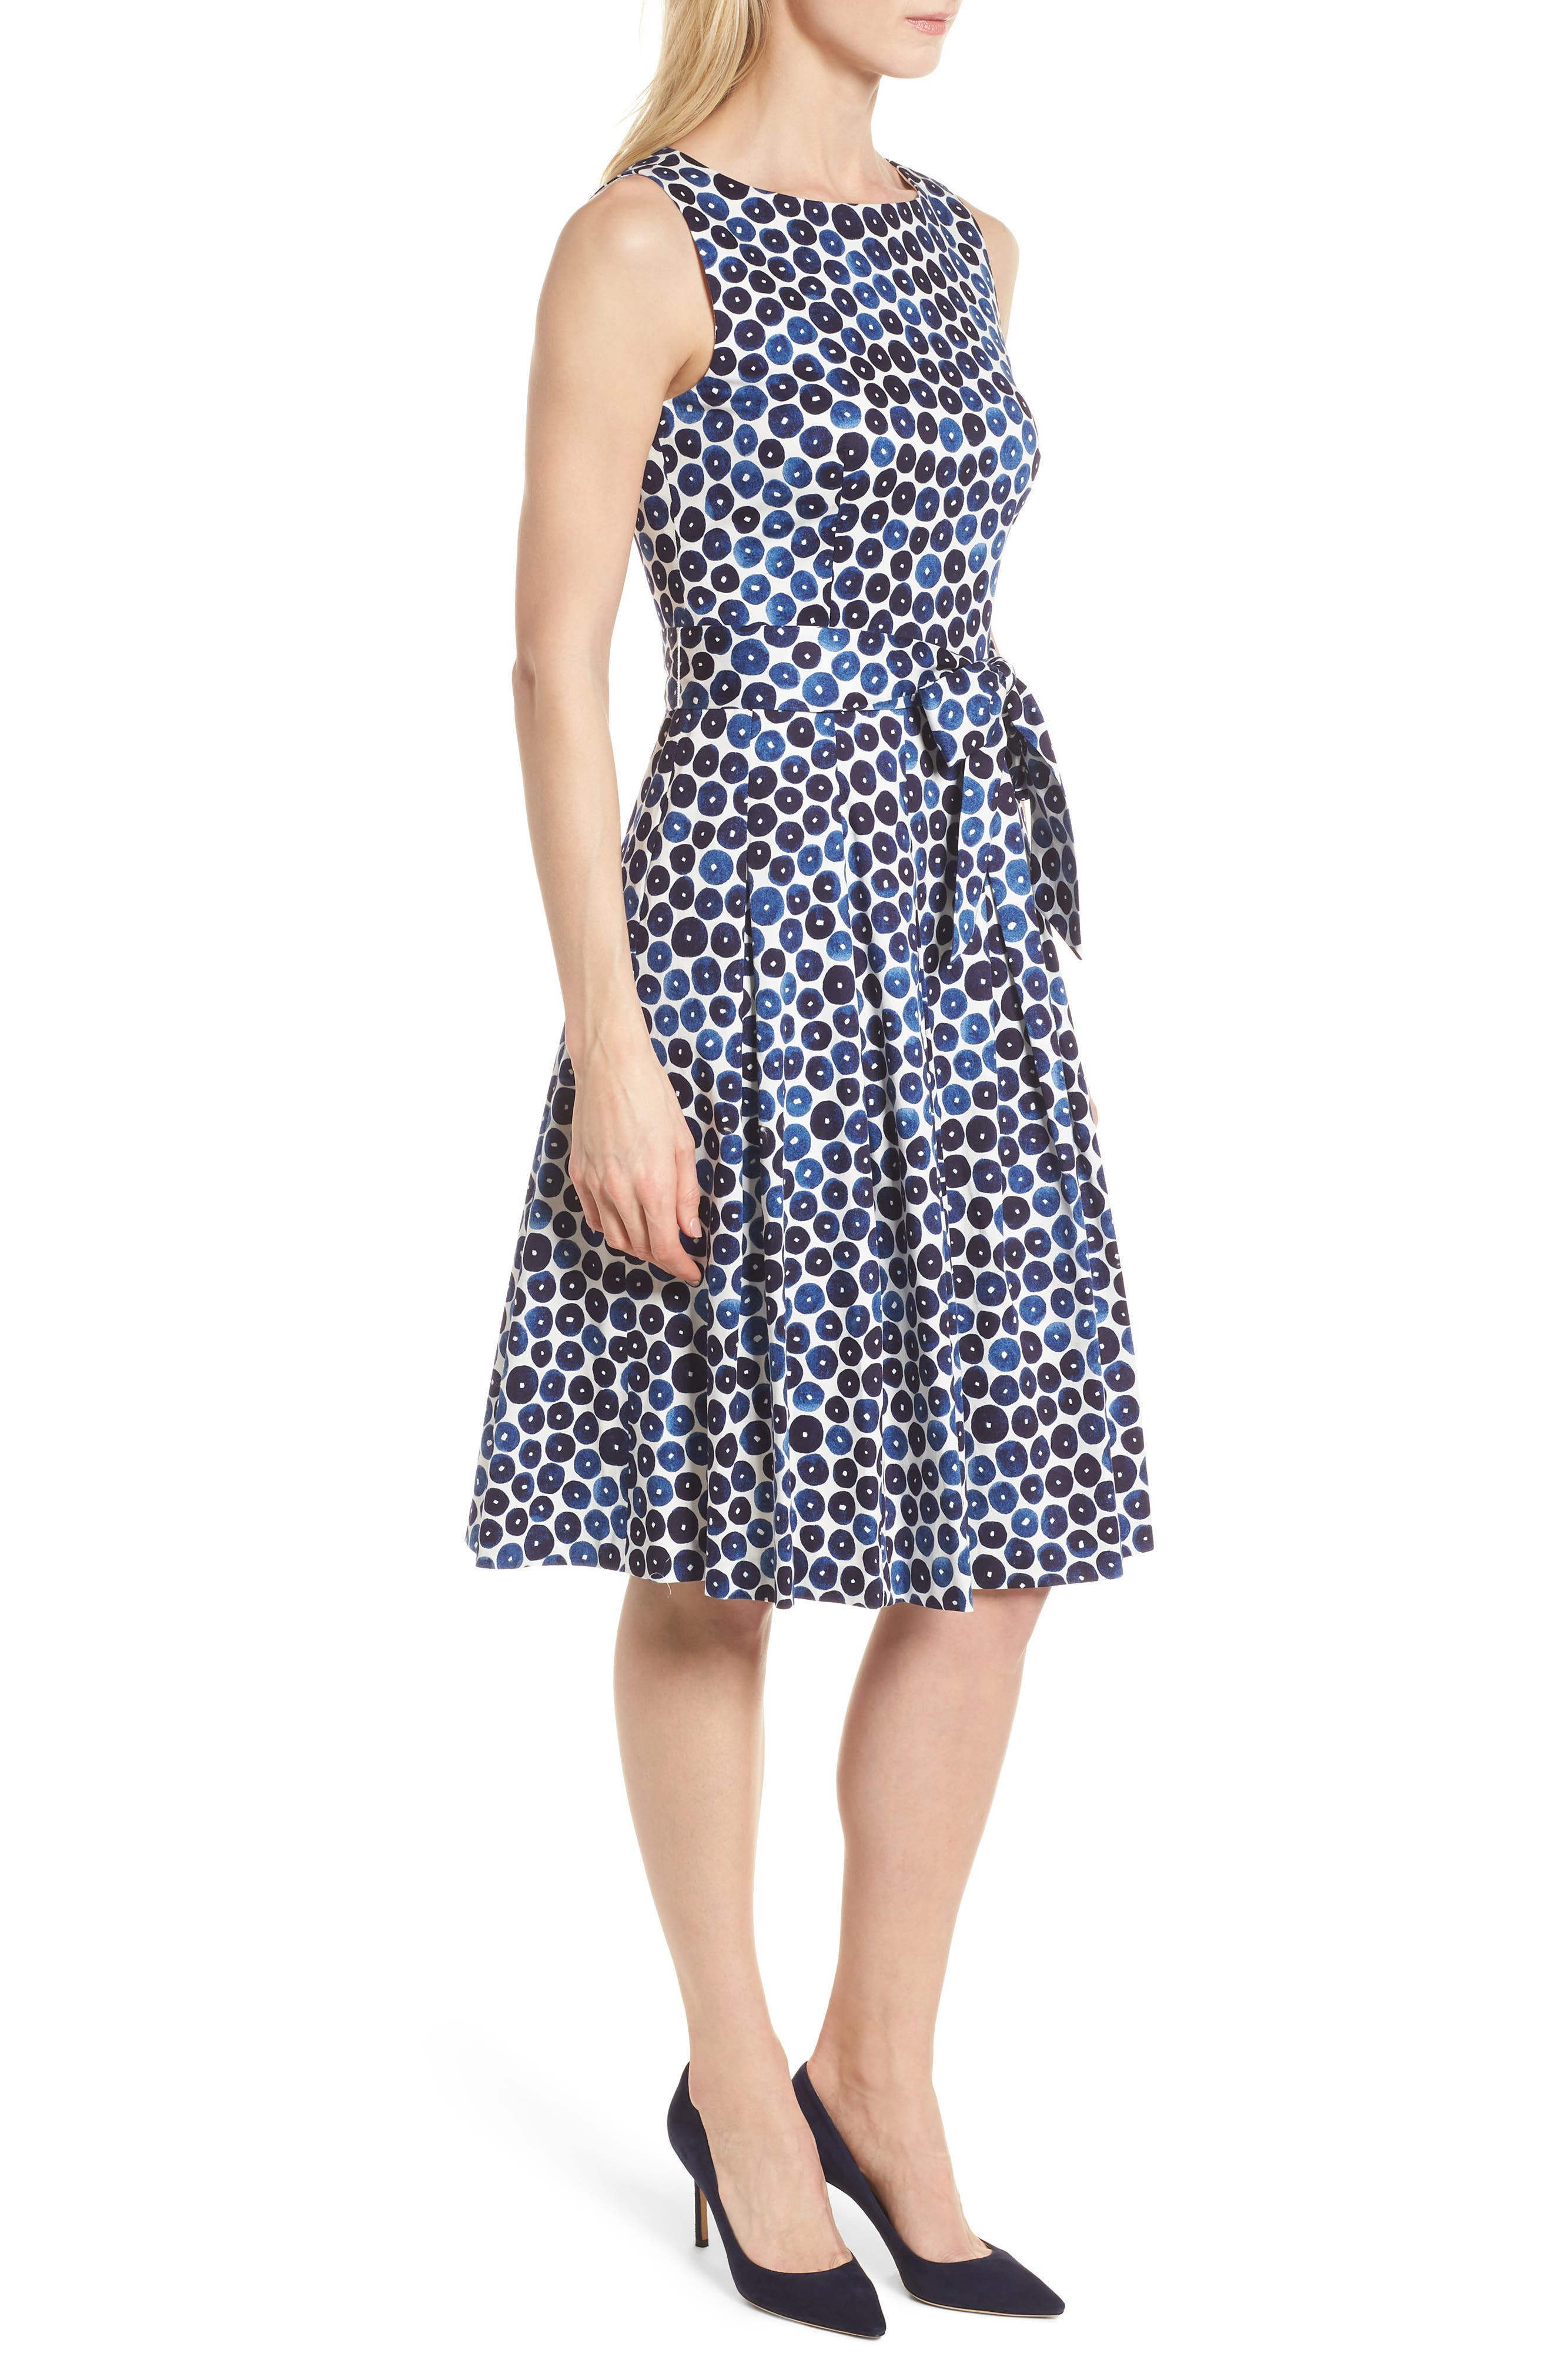 Neroli Print Cotton Sateen Dress,                             Alternate thumbnail 3, color,                             400